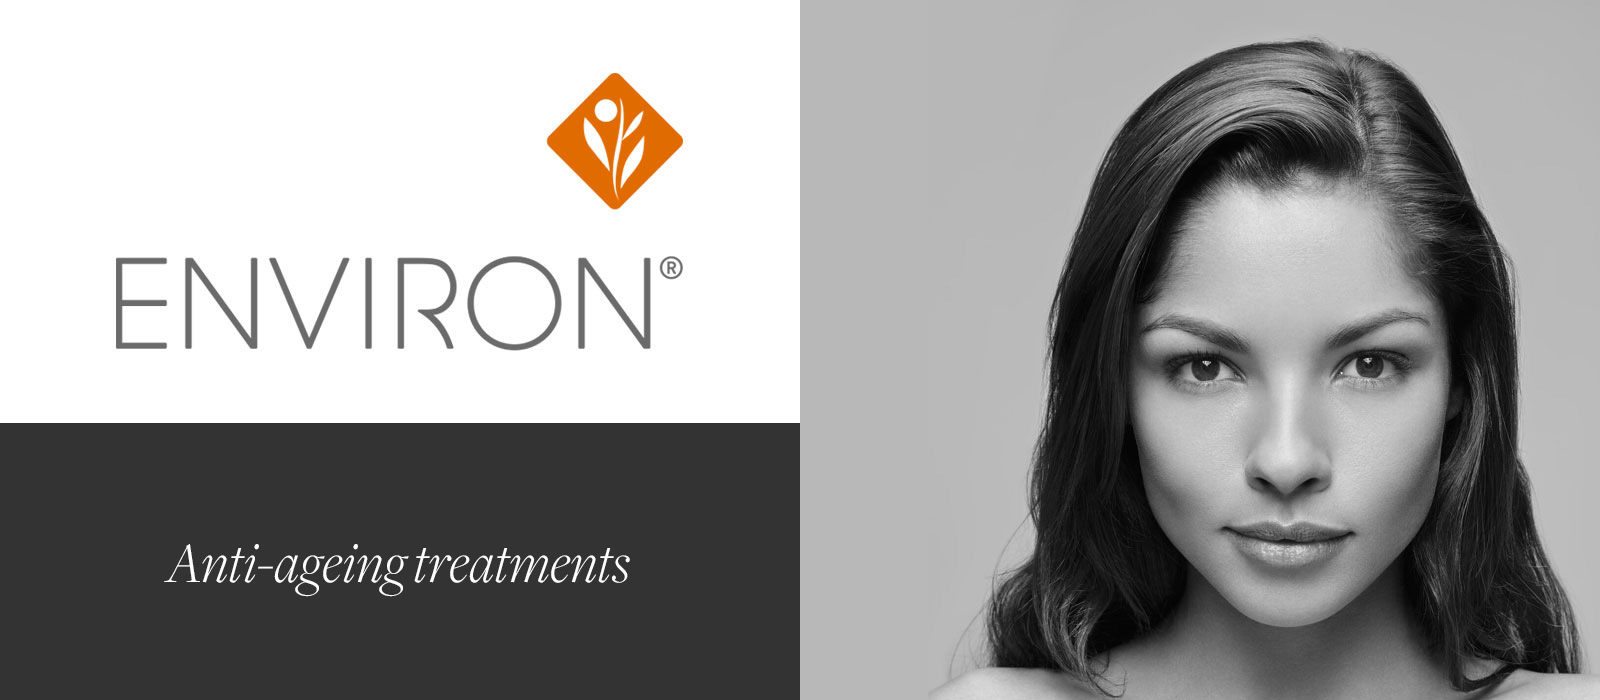 Environ Facial Treatments